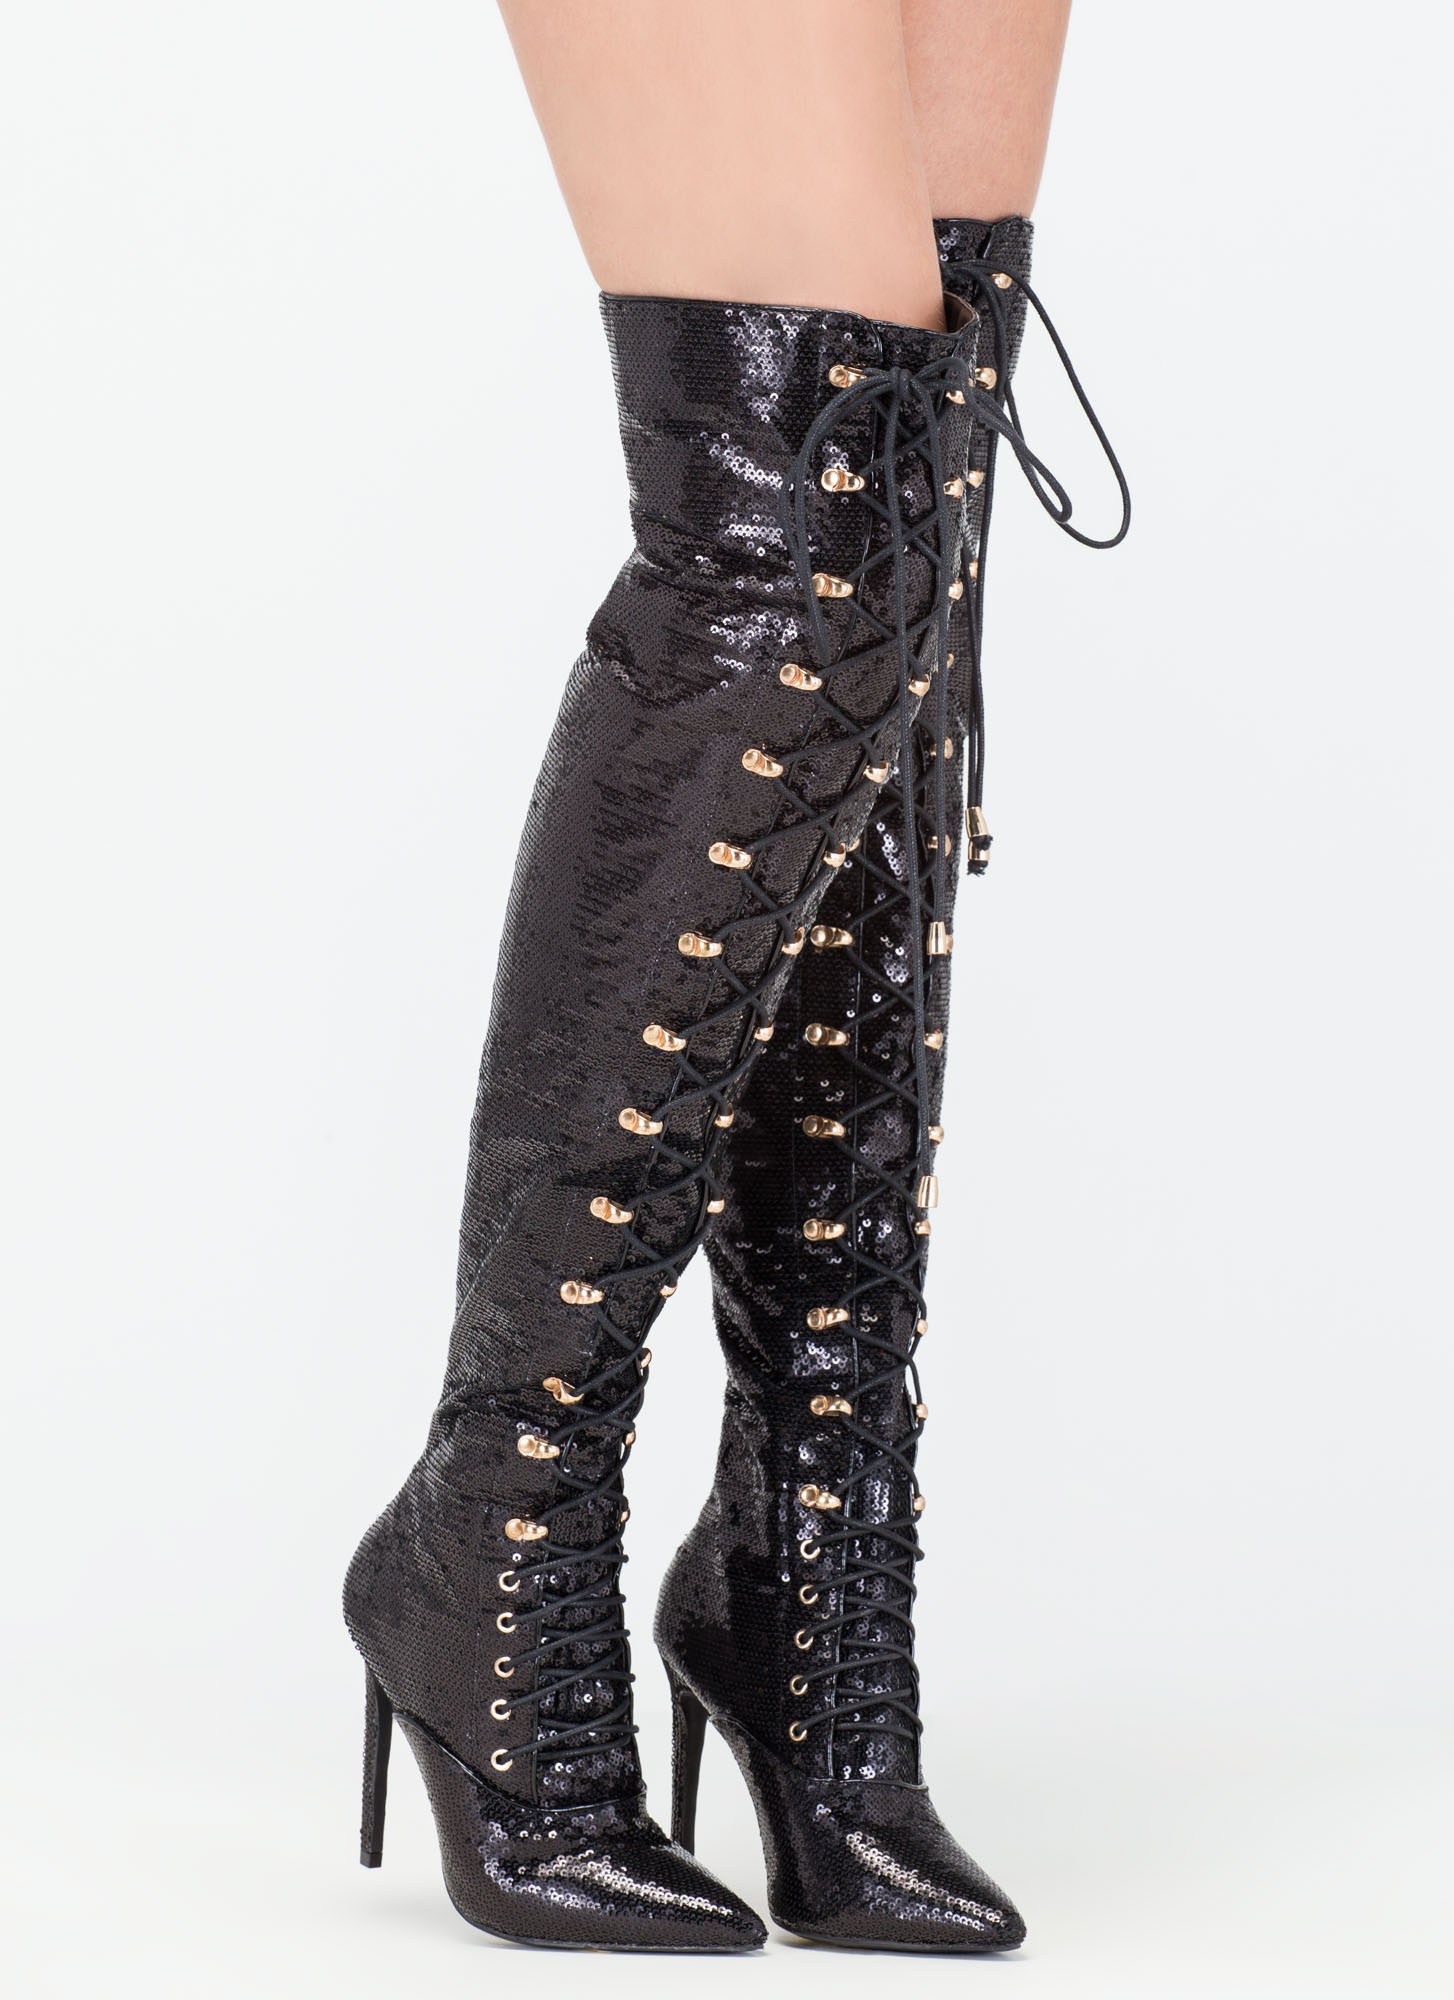 Create a totally glam look in some thigh-high boots paired with distressed skinny jeans, or wear them with a bodycon dress for your next night out with the girls.